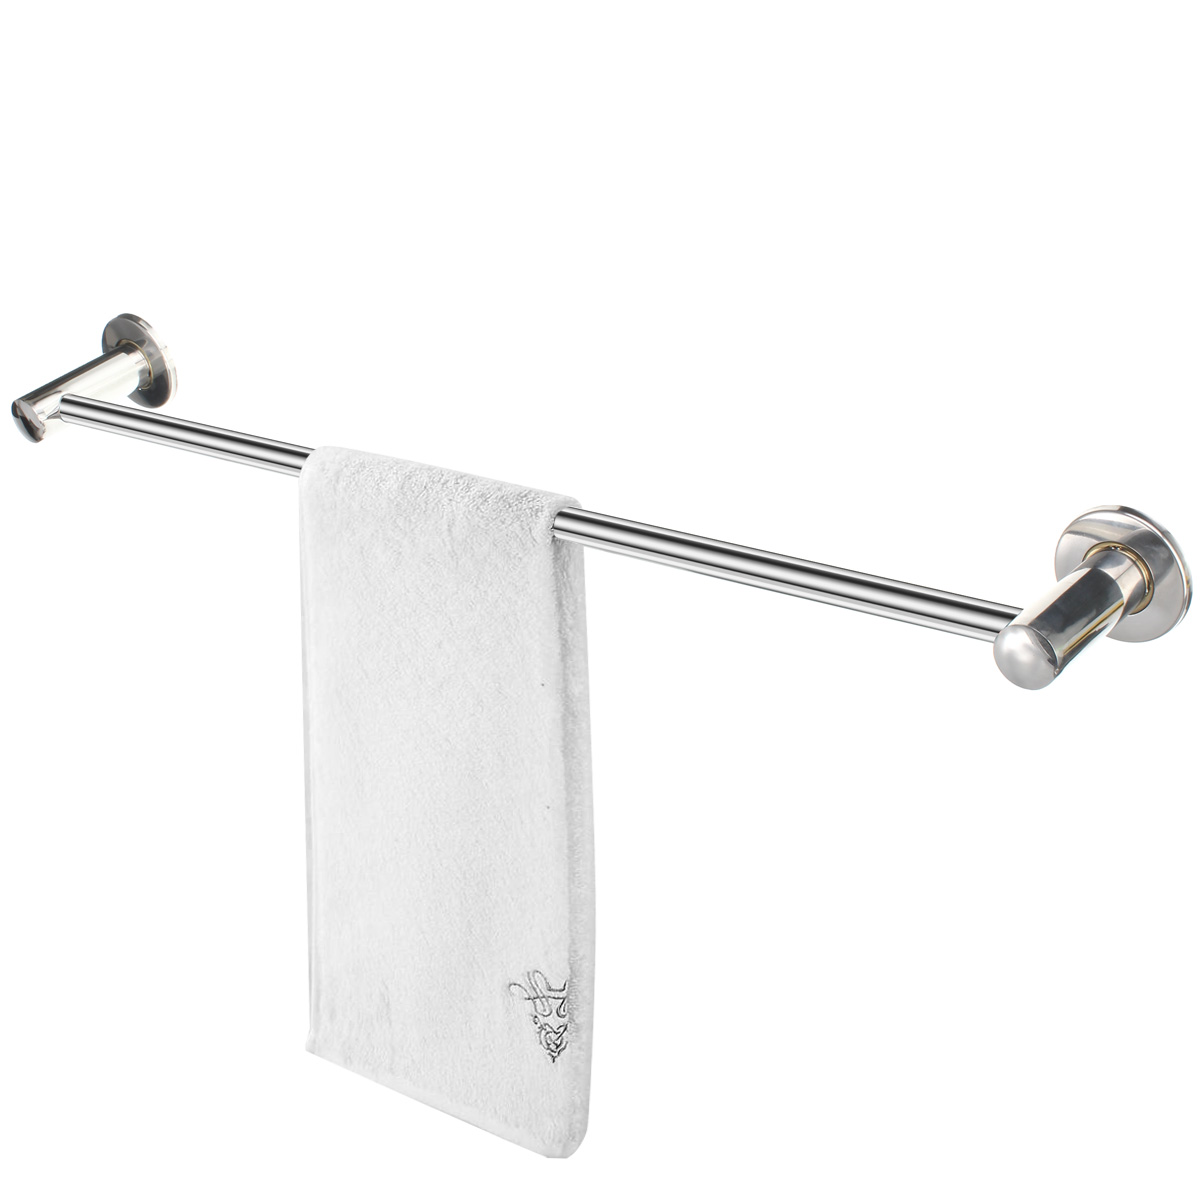 wall mounted towel rack bathroom hotel rail holder storage shelf stainless steel 192125208864 ebay. Black Bedroom Furniture Sets. Home Design Ideas